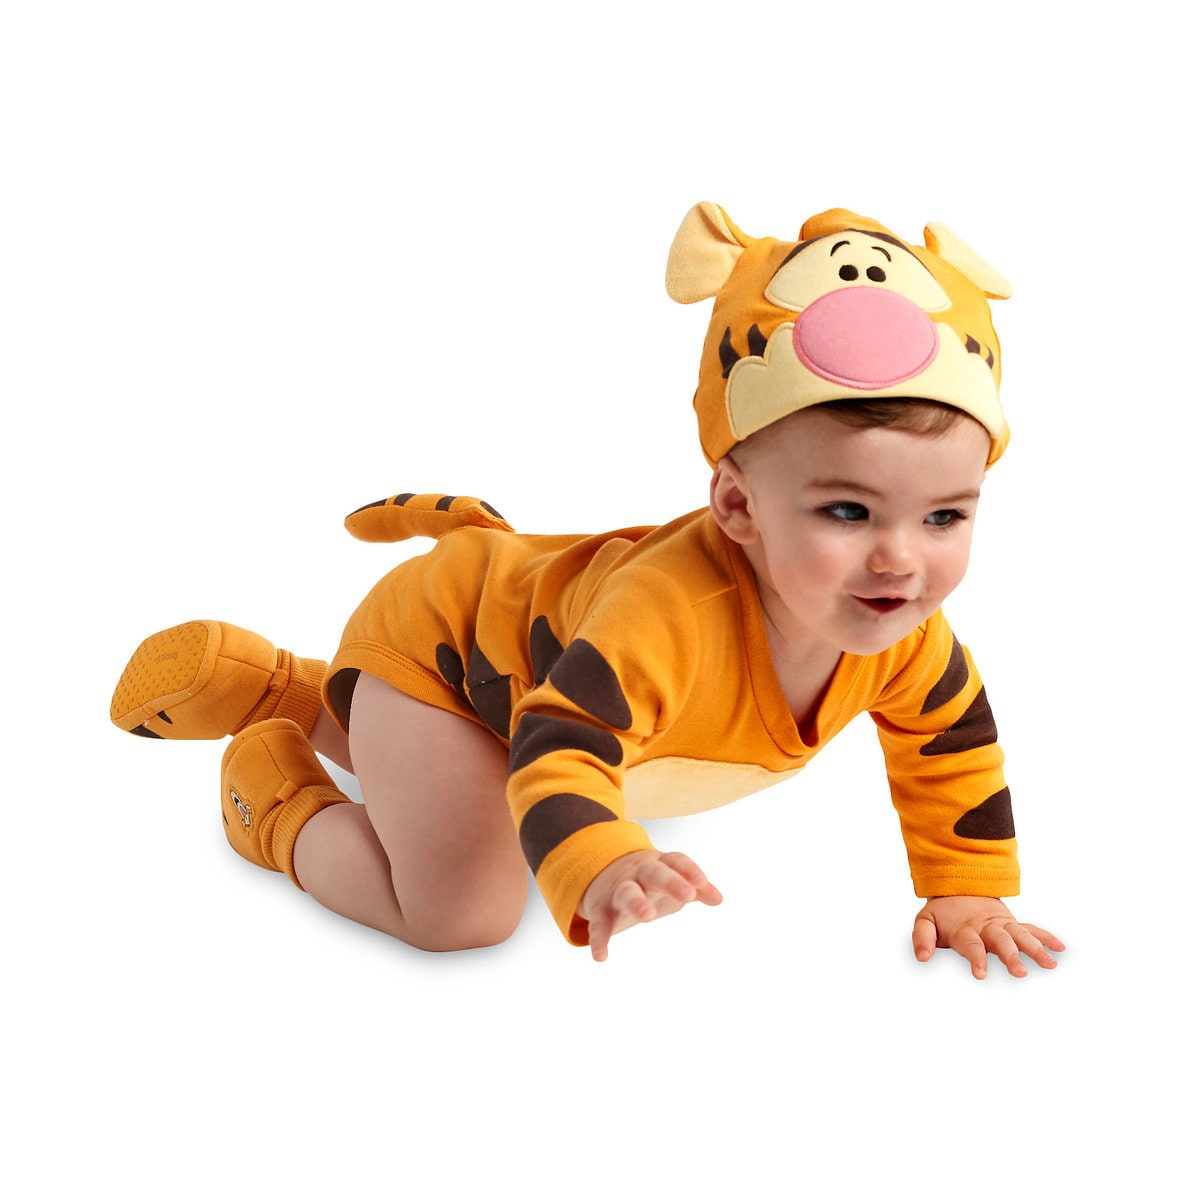 d857c81b1 Product Image of Tigger Disney Cuddly Bodysuit Costume Collection for Baby  # 1